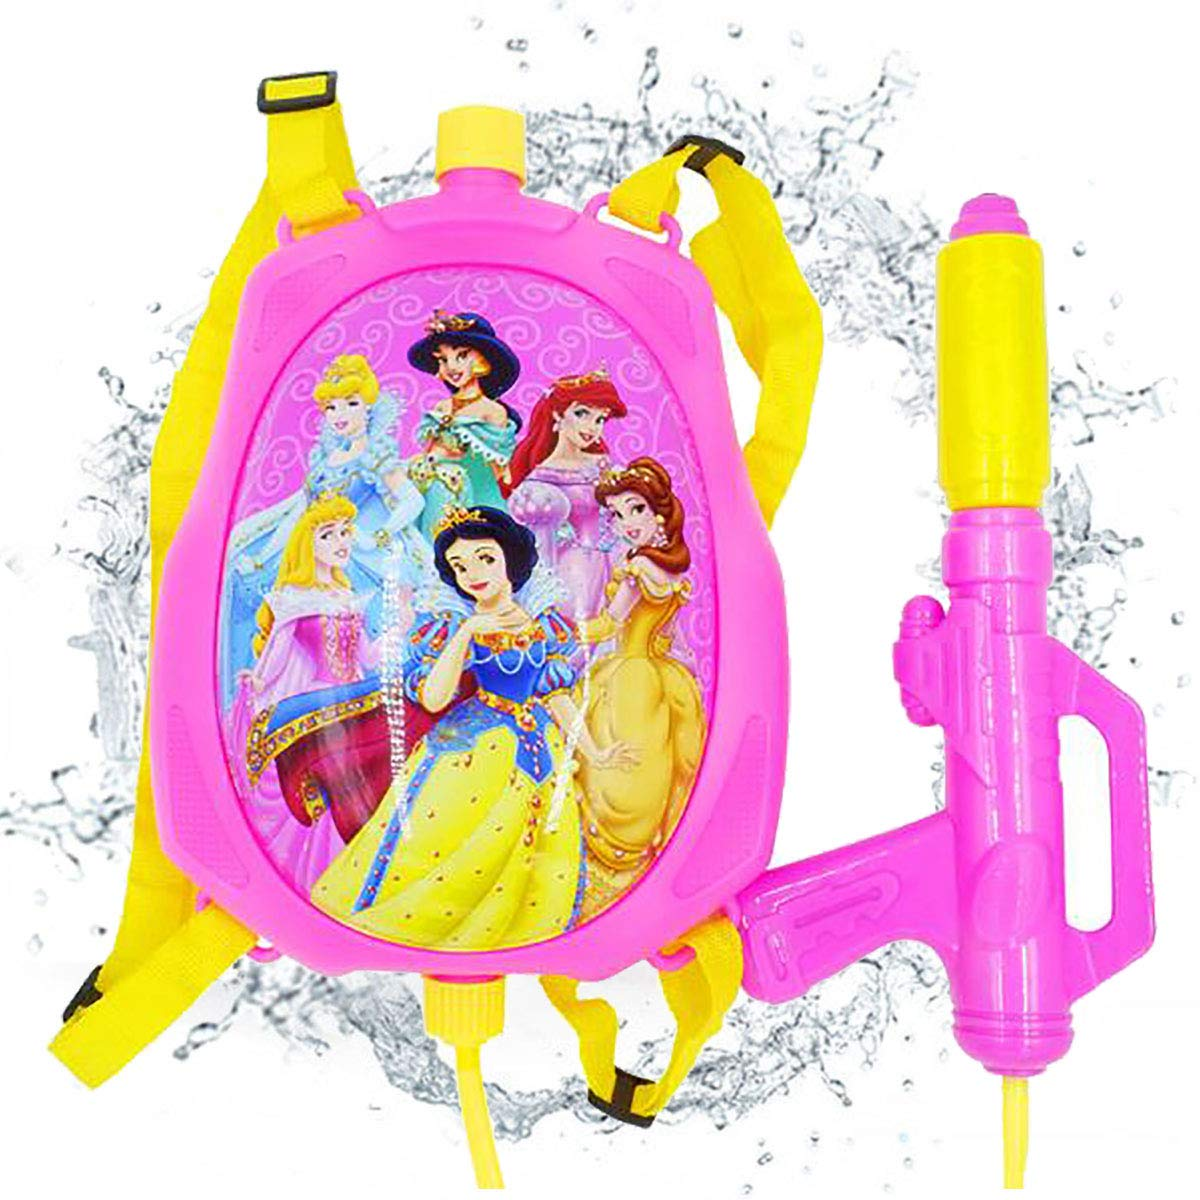 IDOXE Backpack Water Gun for Kids. Let Your Children Have Fun with High Capacity Super Soaker Squirt Gun. Enjoy Water Fight in Swimming Pool & Beach. ... (Princess) by IDOXE